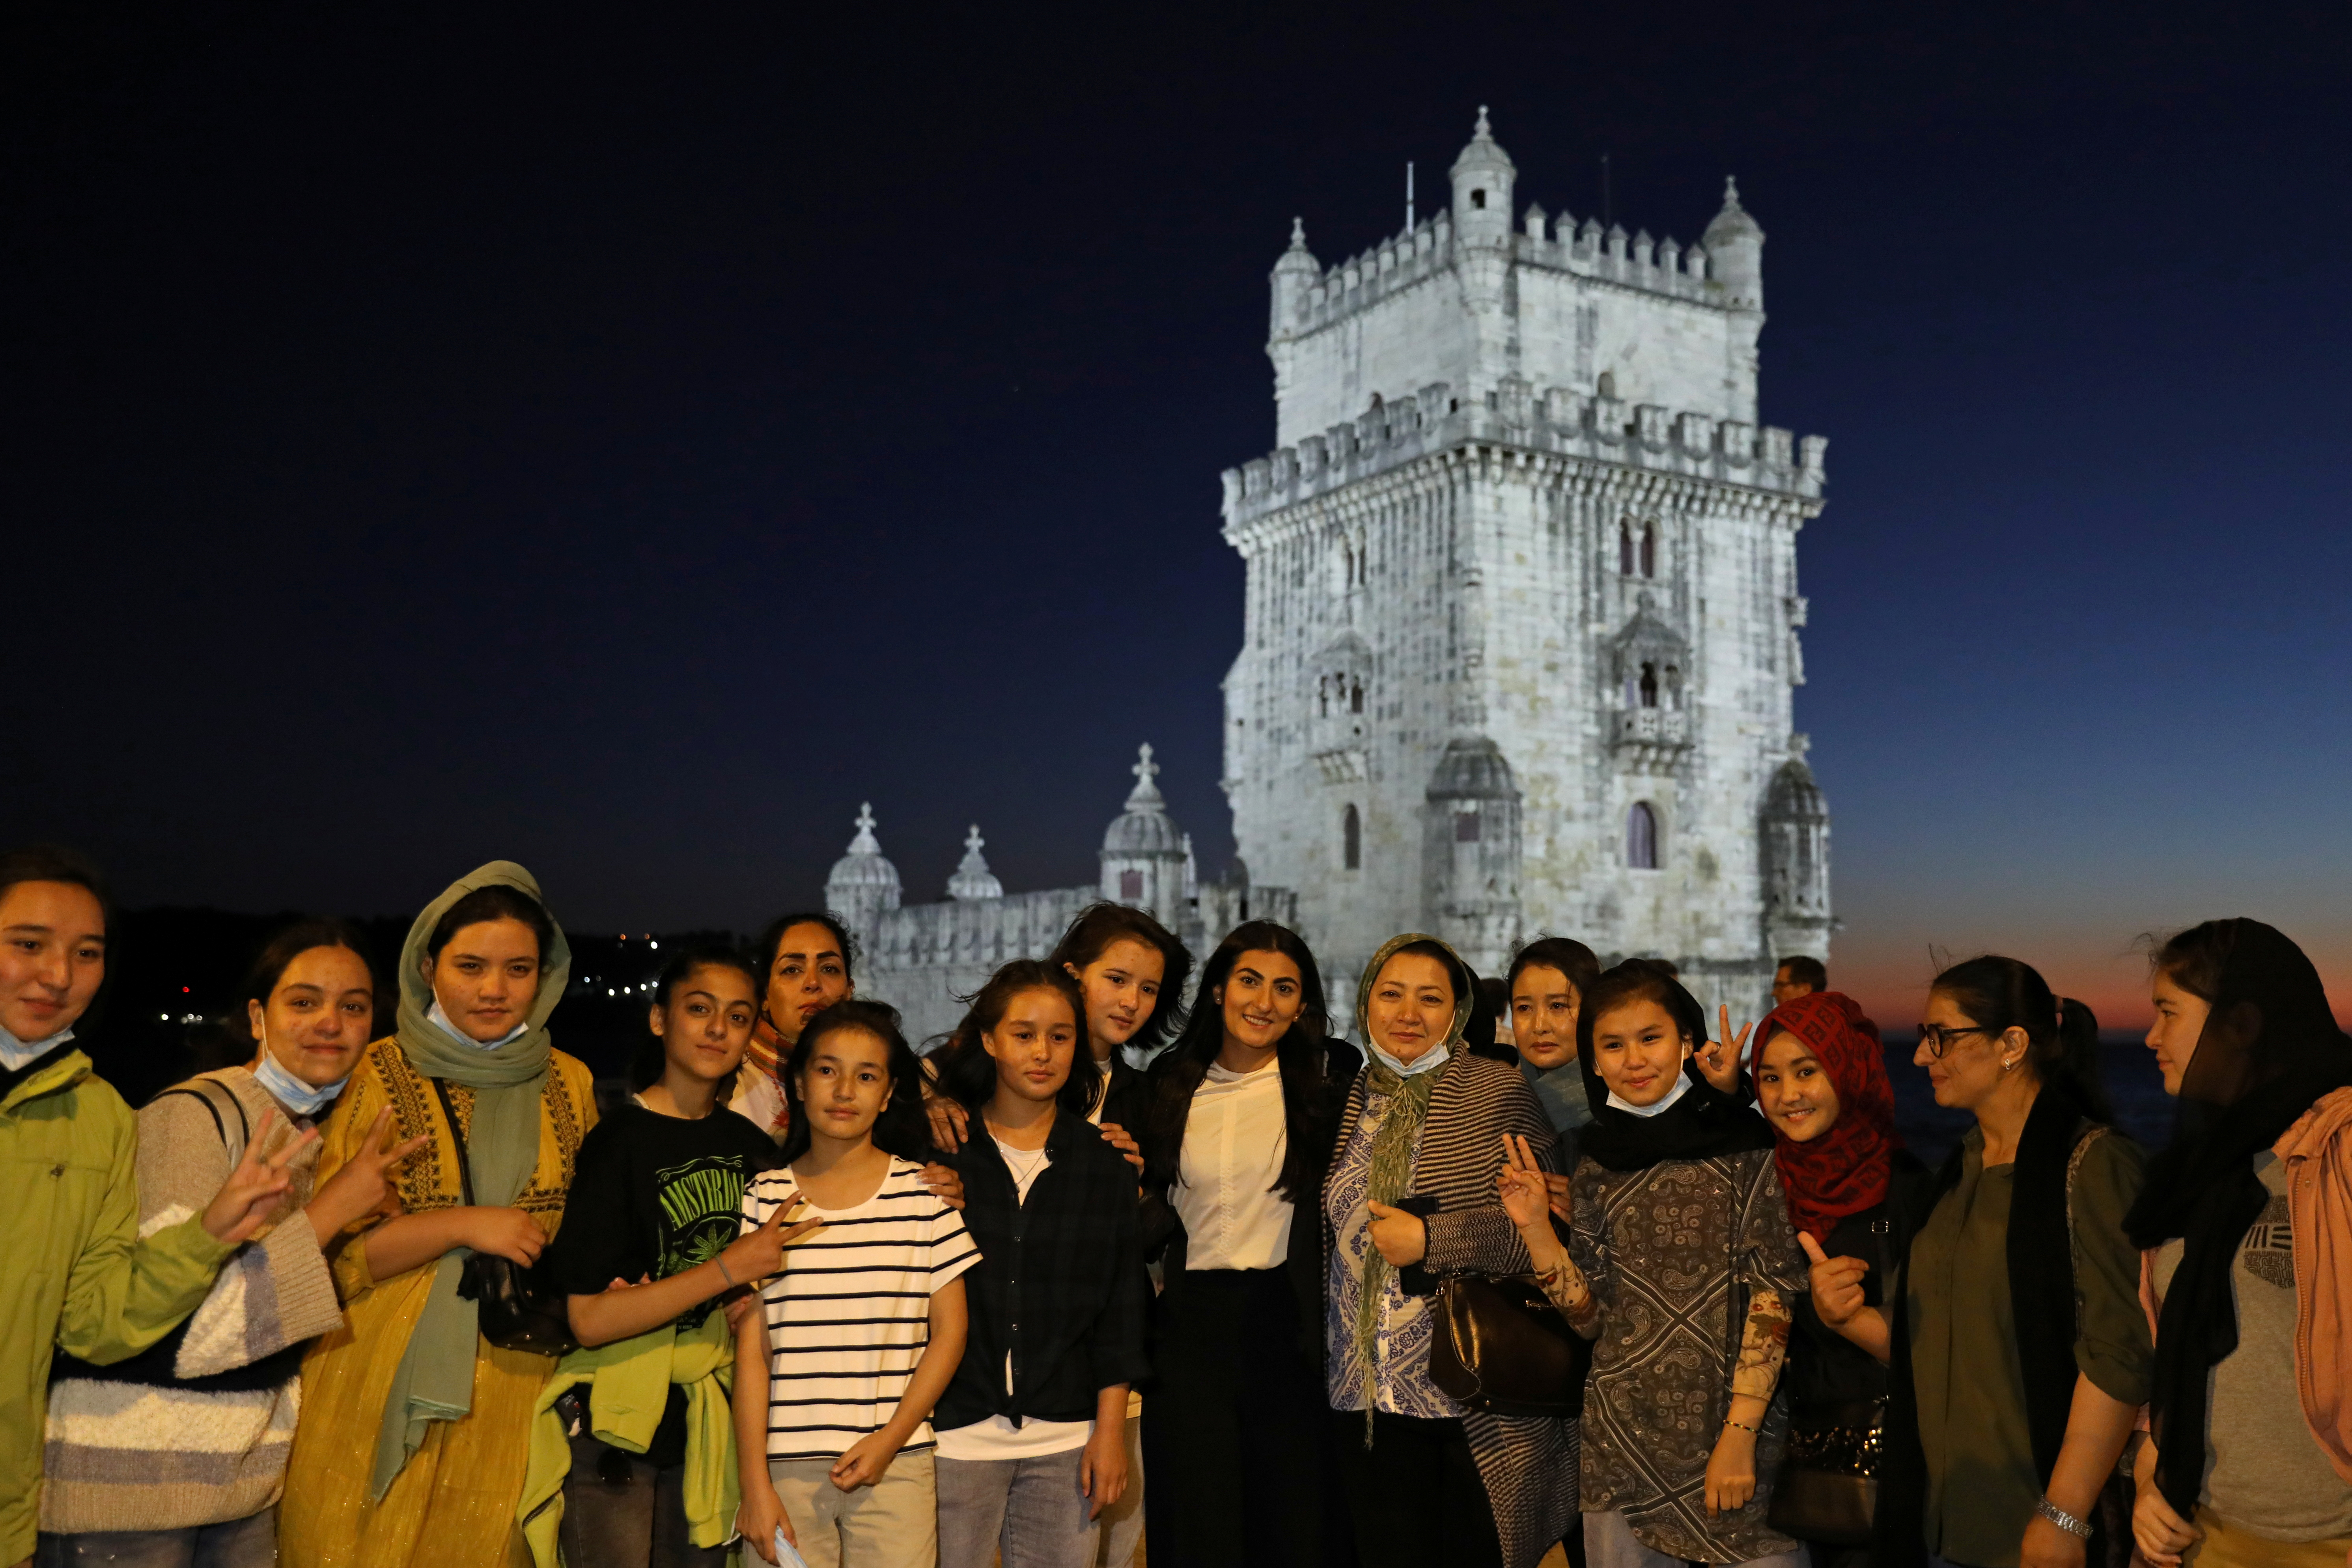 The captain of Afghanistan's national women football team Farkhunda Muhtaj (C) poses for a portrait with teammates at the Belem Tower in Lisbon, Portugal, September 29, 2021. Picture taken September 29, 2021. REUTERS/Rodrigo Antunes NO RESALES. NO ARCHIVES